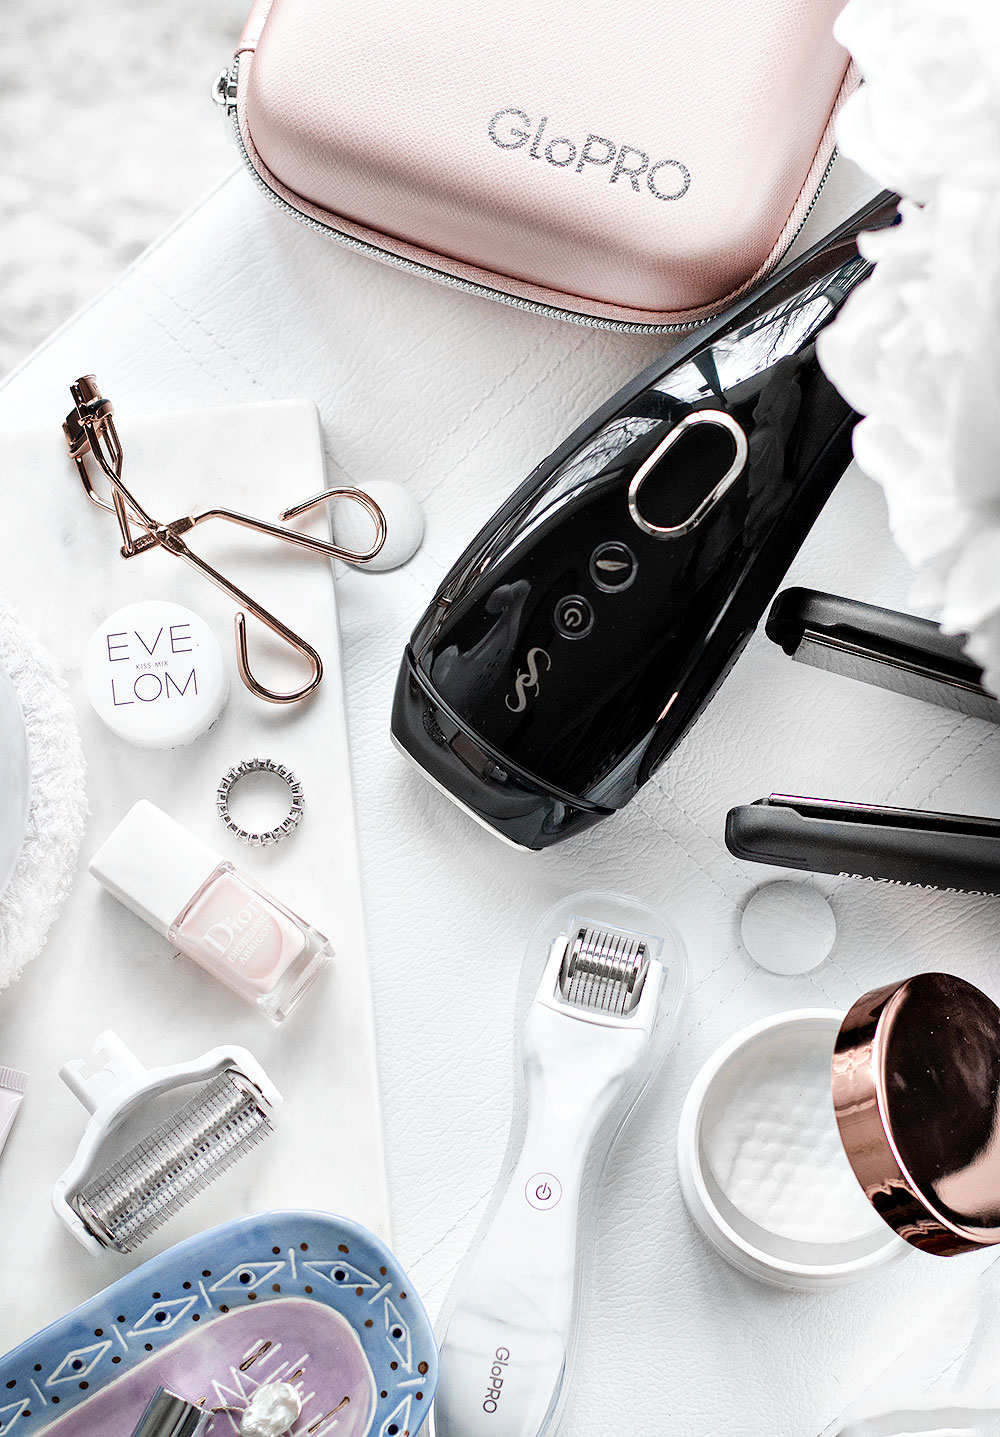 My Favorite At-Home Beauty Gadgets + Tools